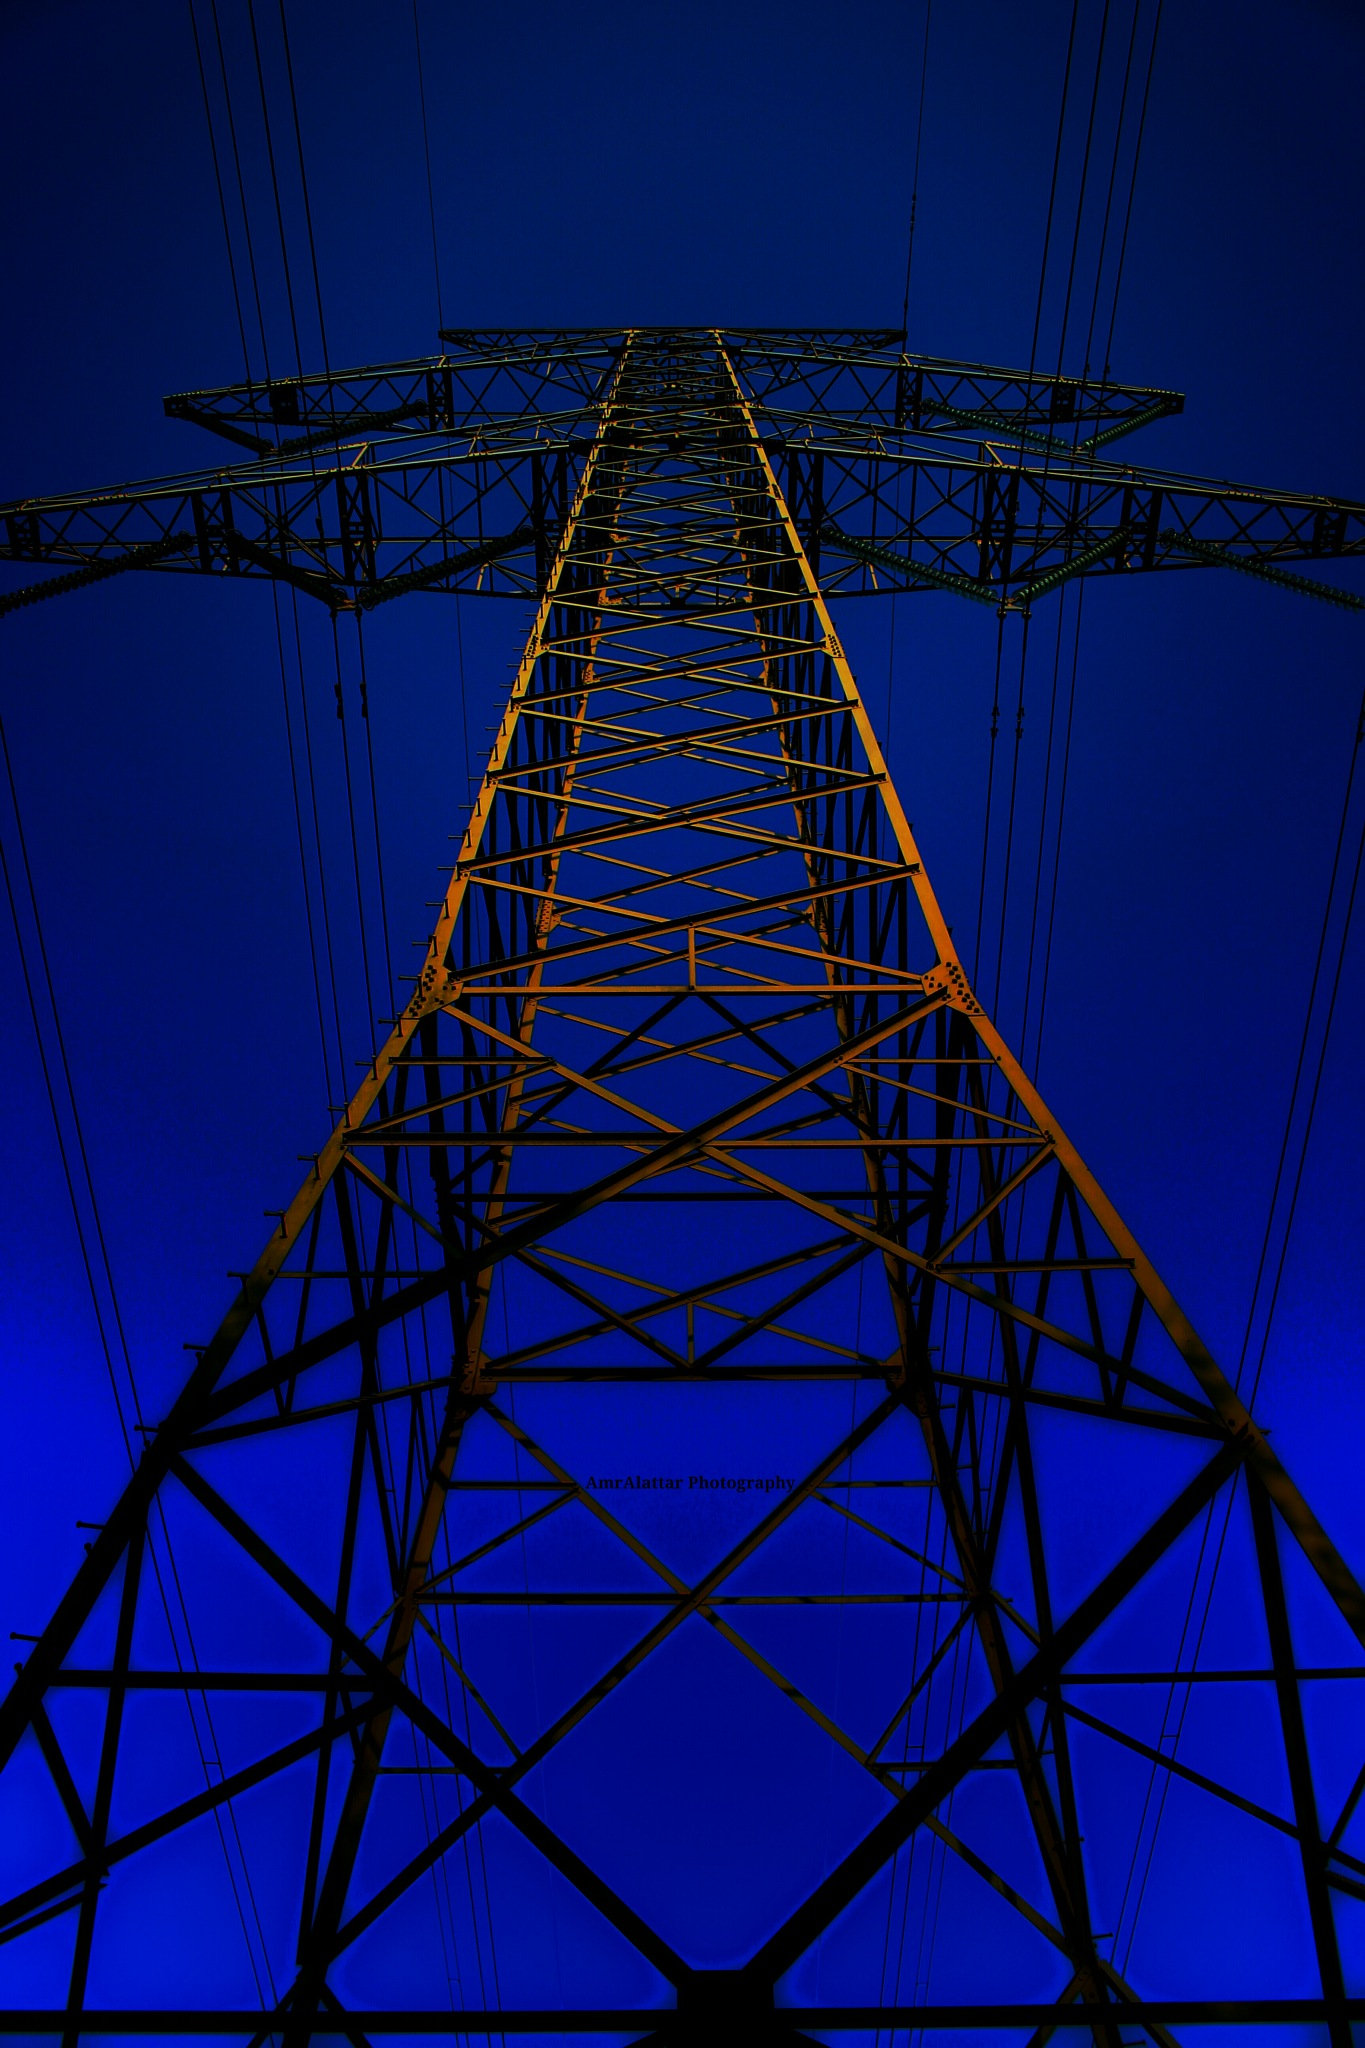 Tower Electricity by Amr Alattar